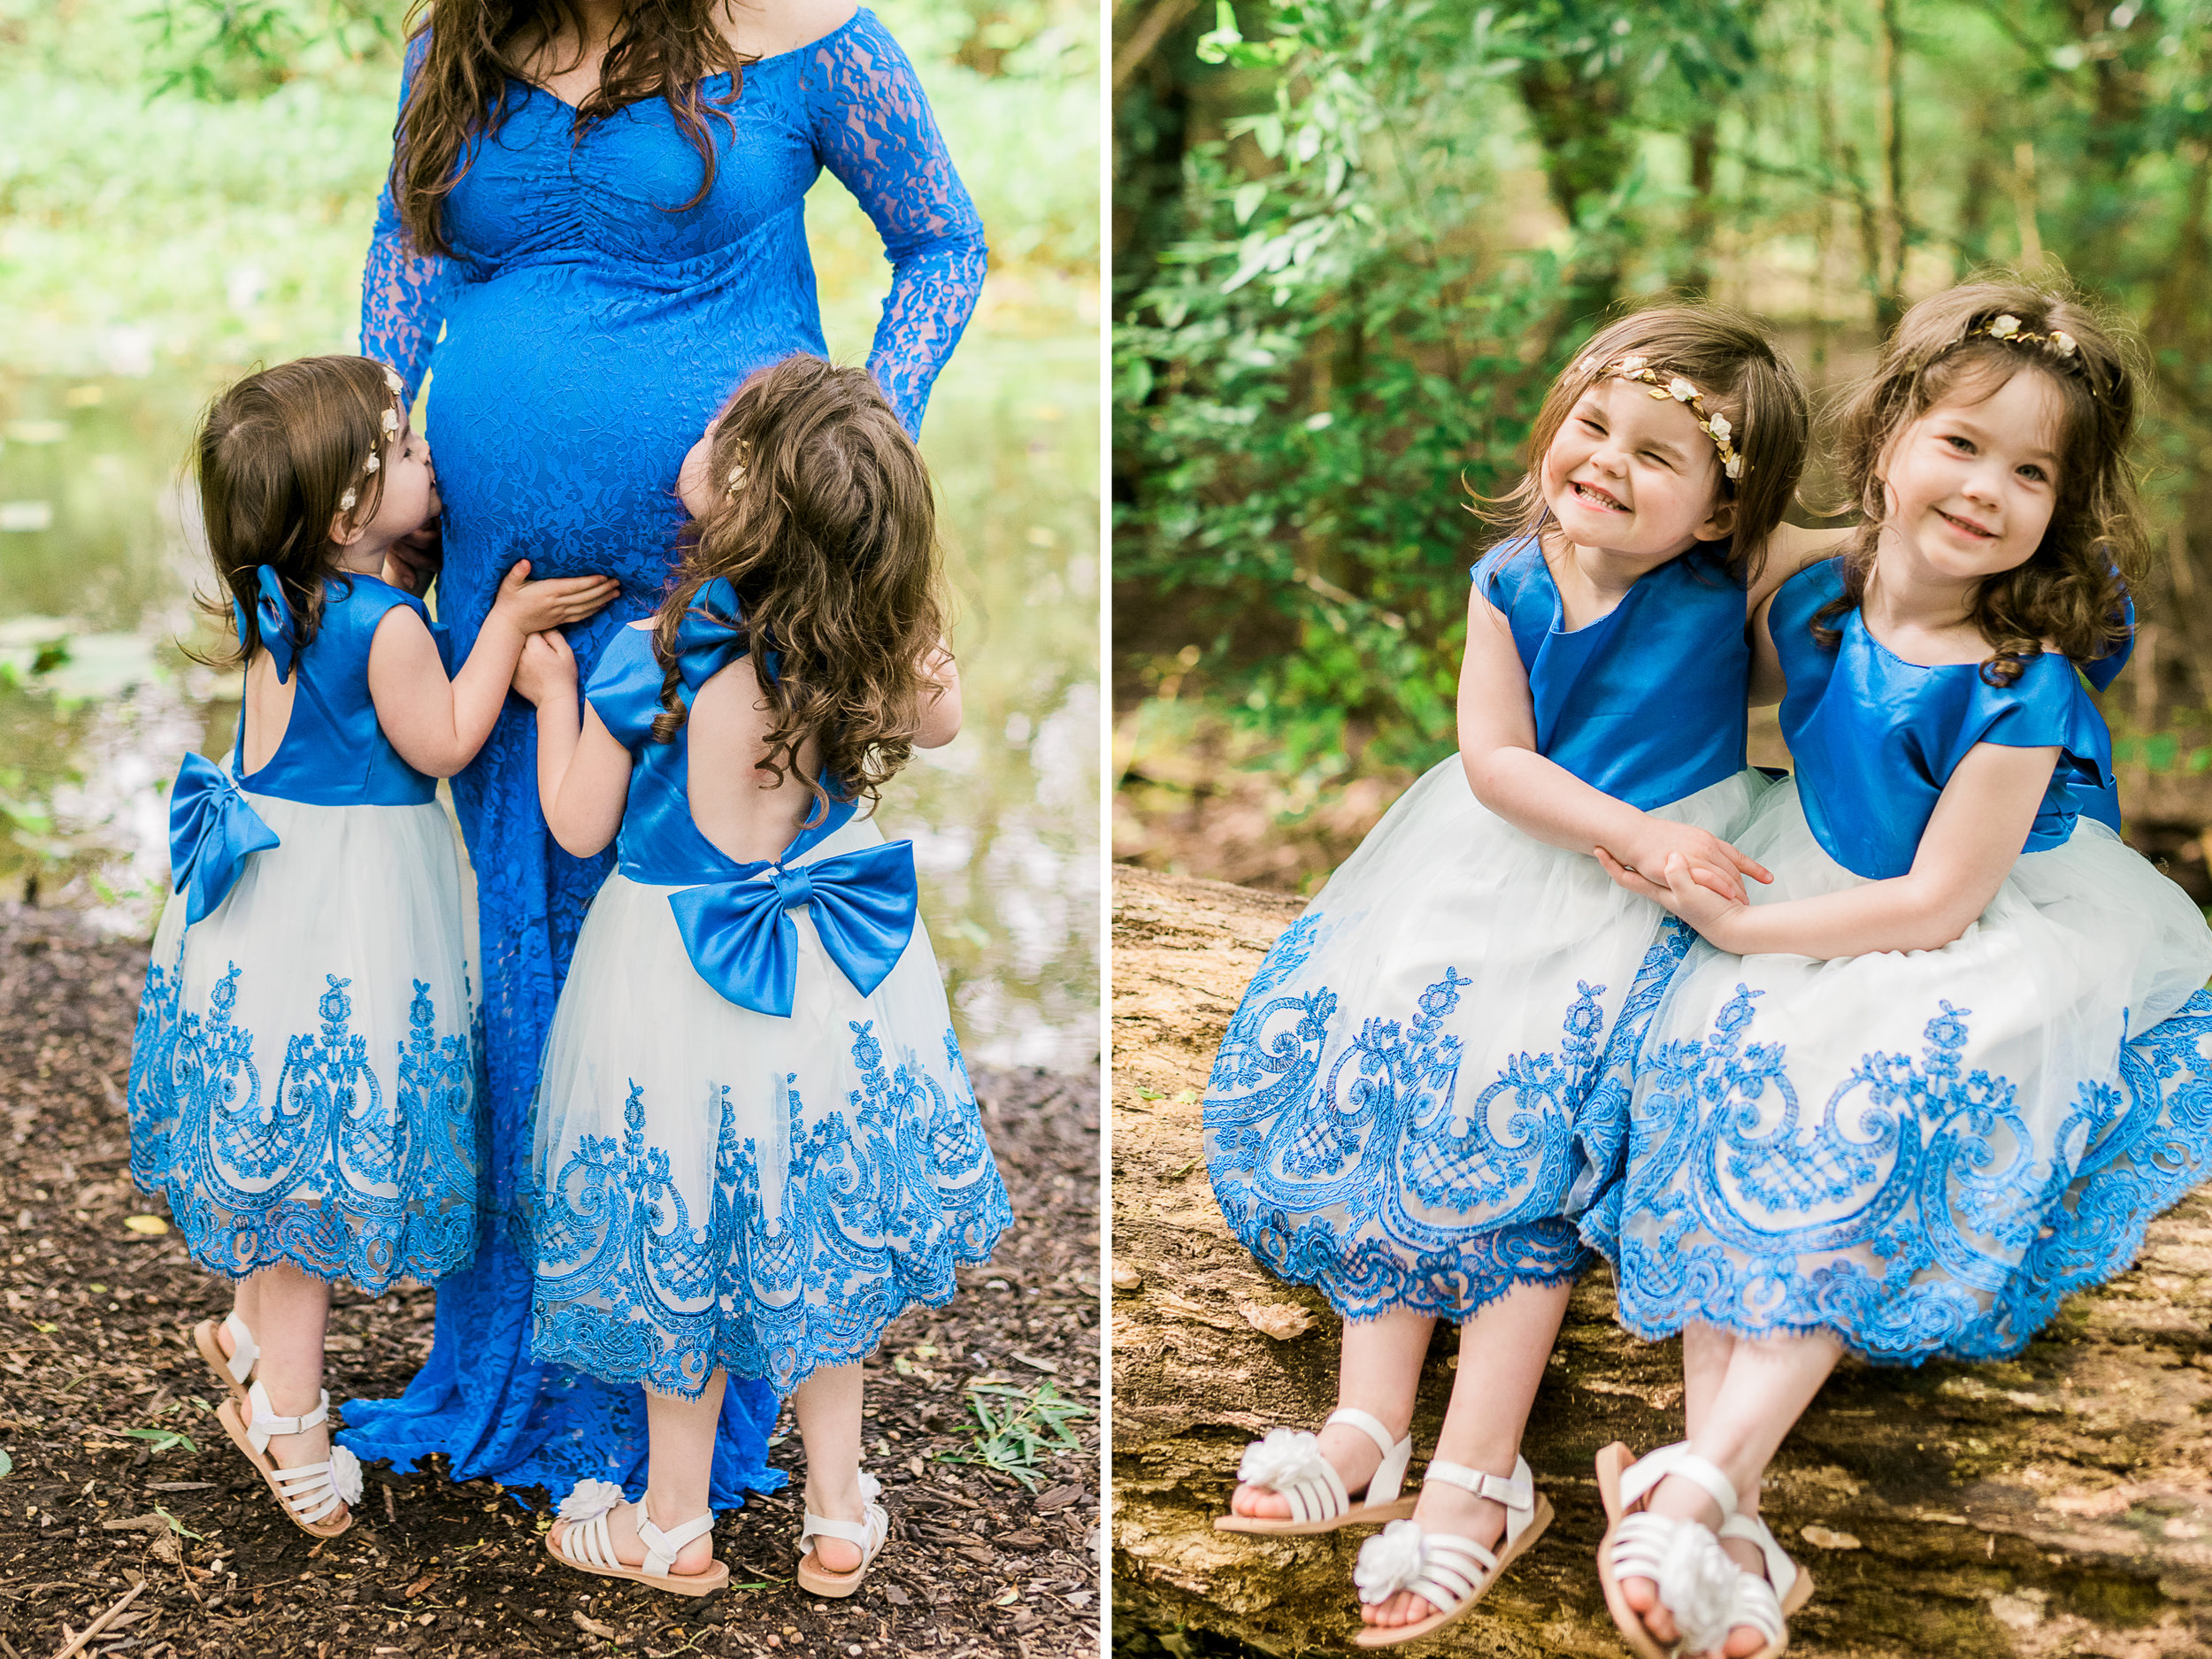 BrassandVeilCreative_Maternity_HoustonMaternityPhotographer_Houston_Arboretum7.jpg